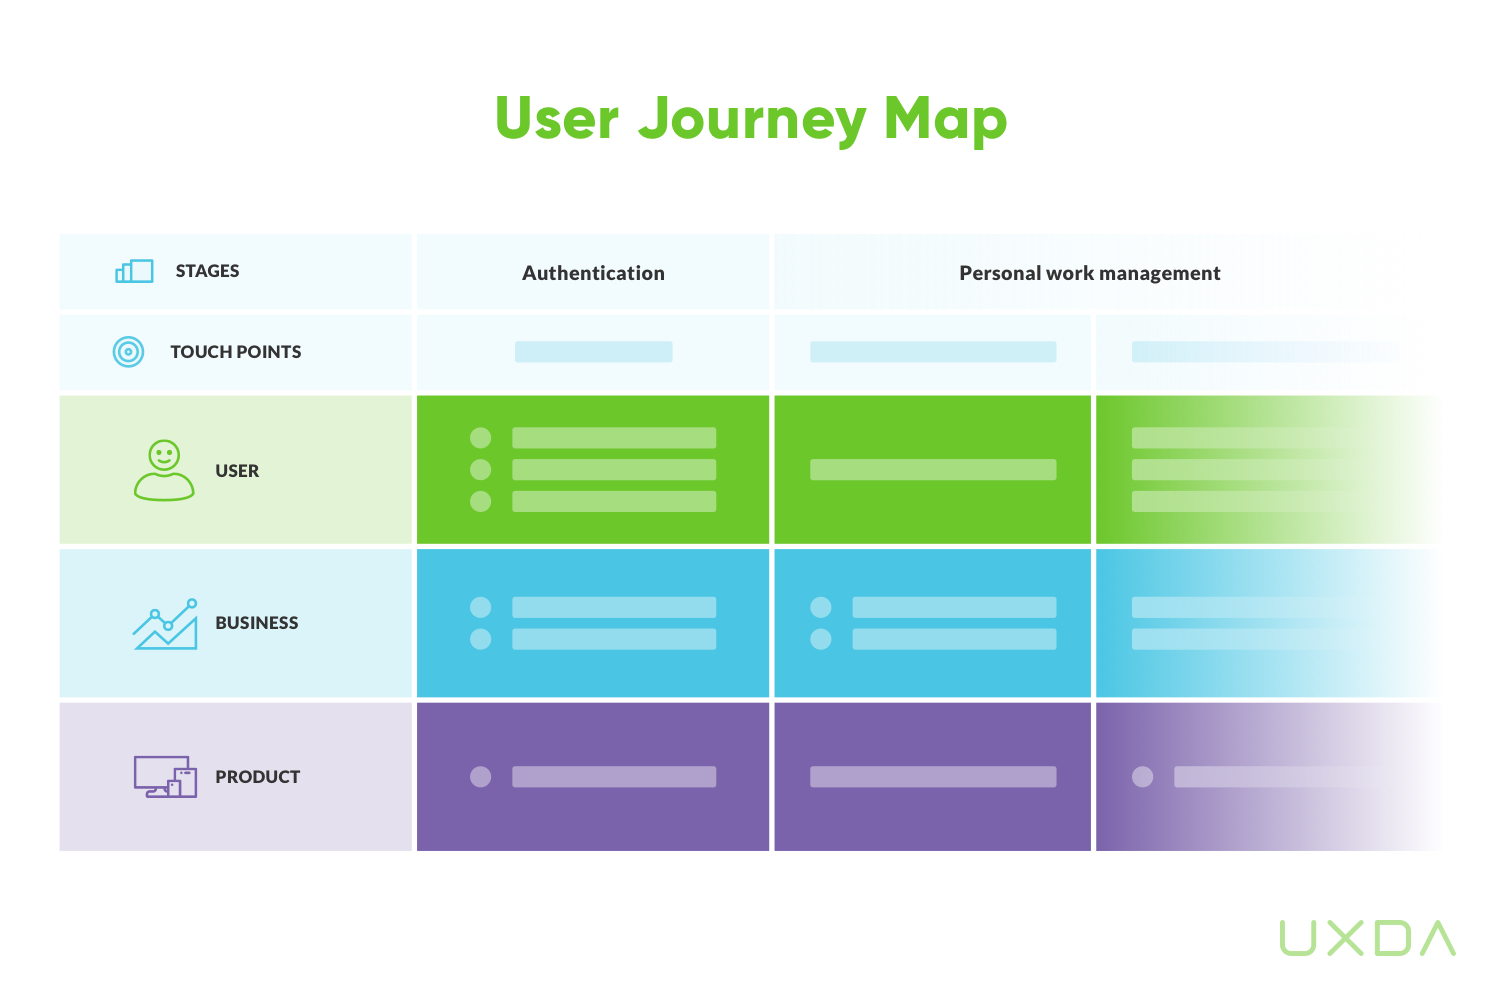 user-journey-mapping-uxda-work-process-ux-design.jpg-m-1.jpg